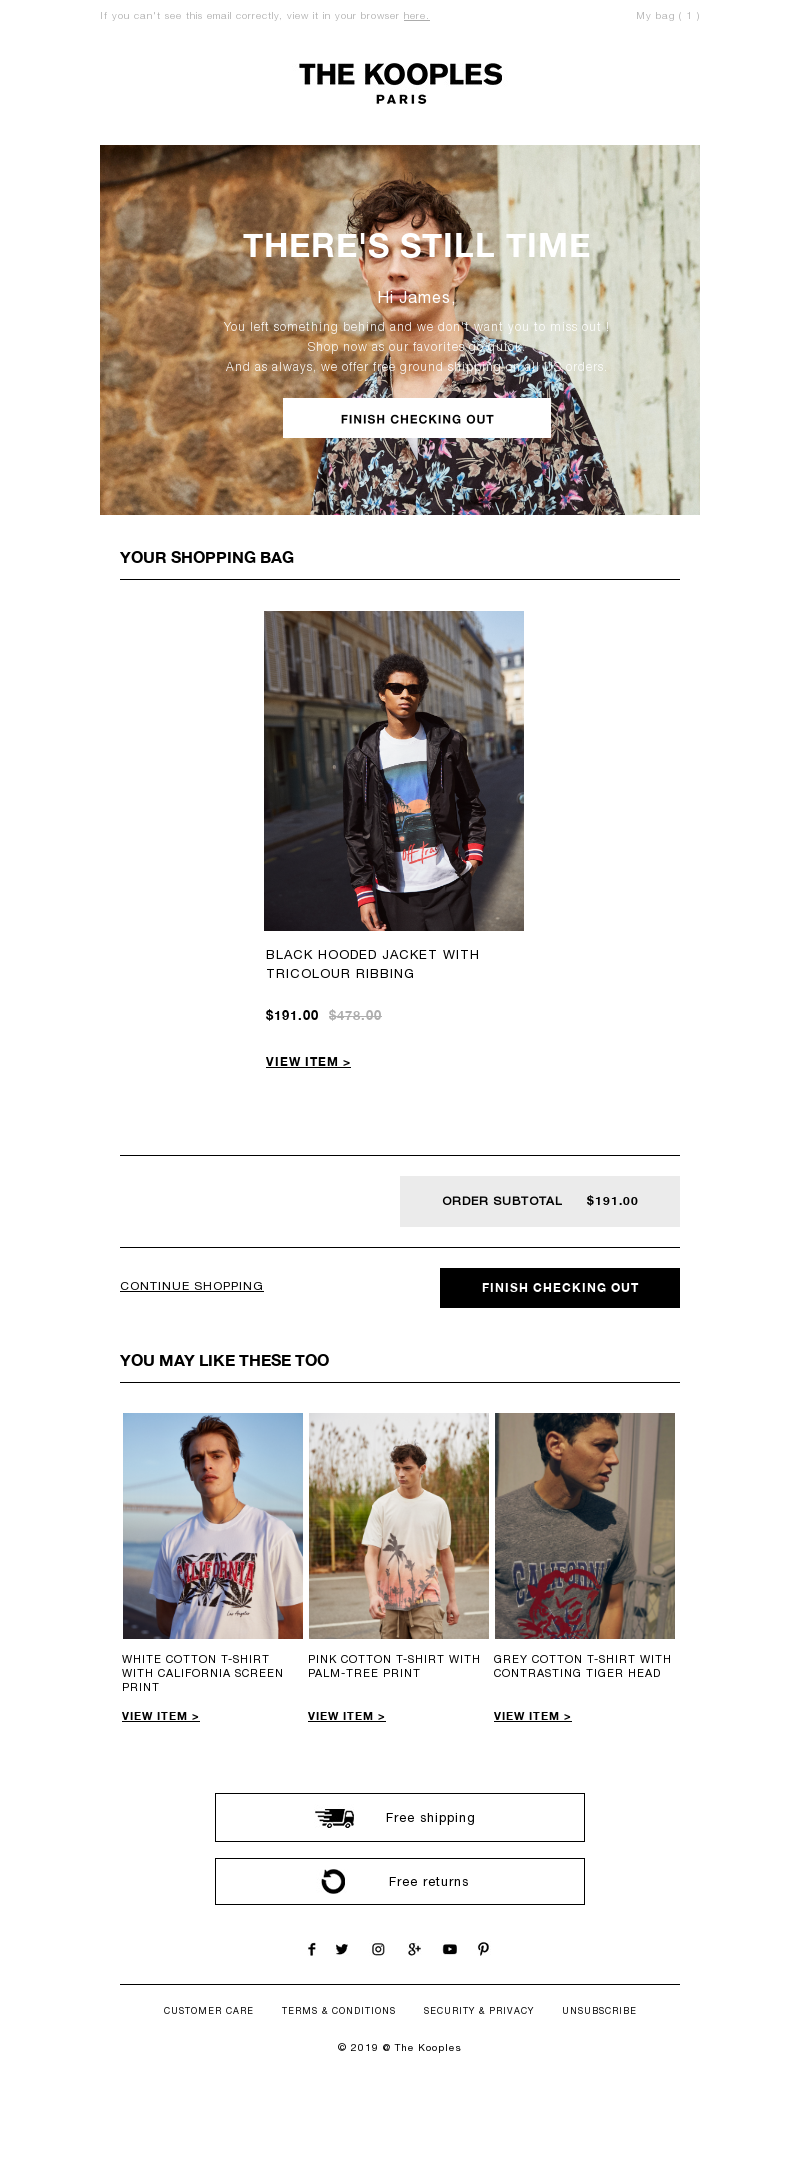 Luxury email example from Kooples